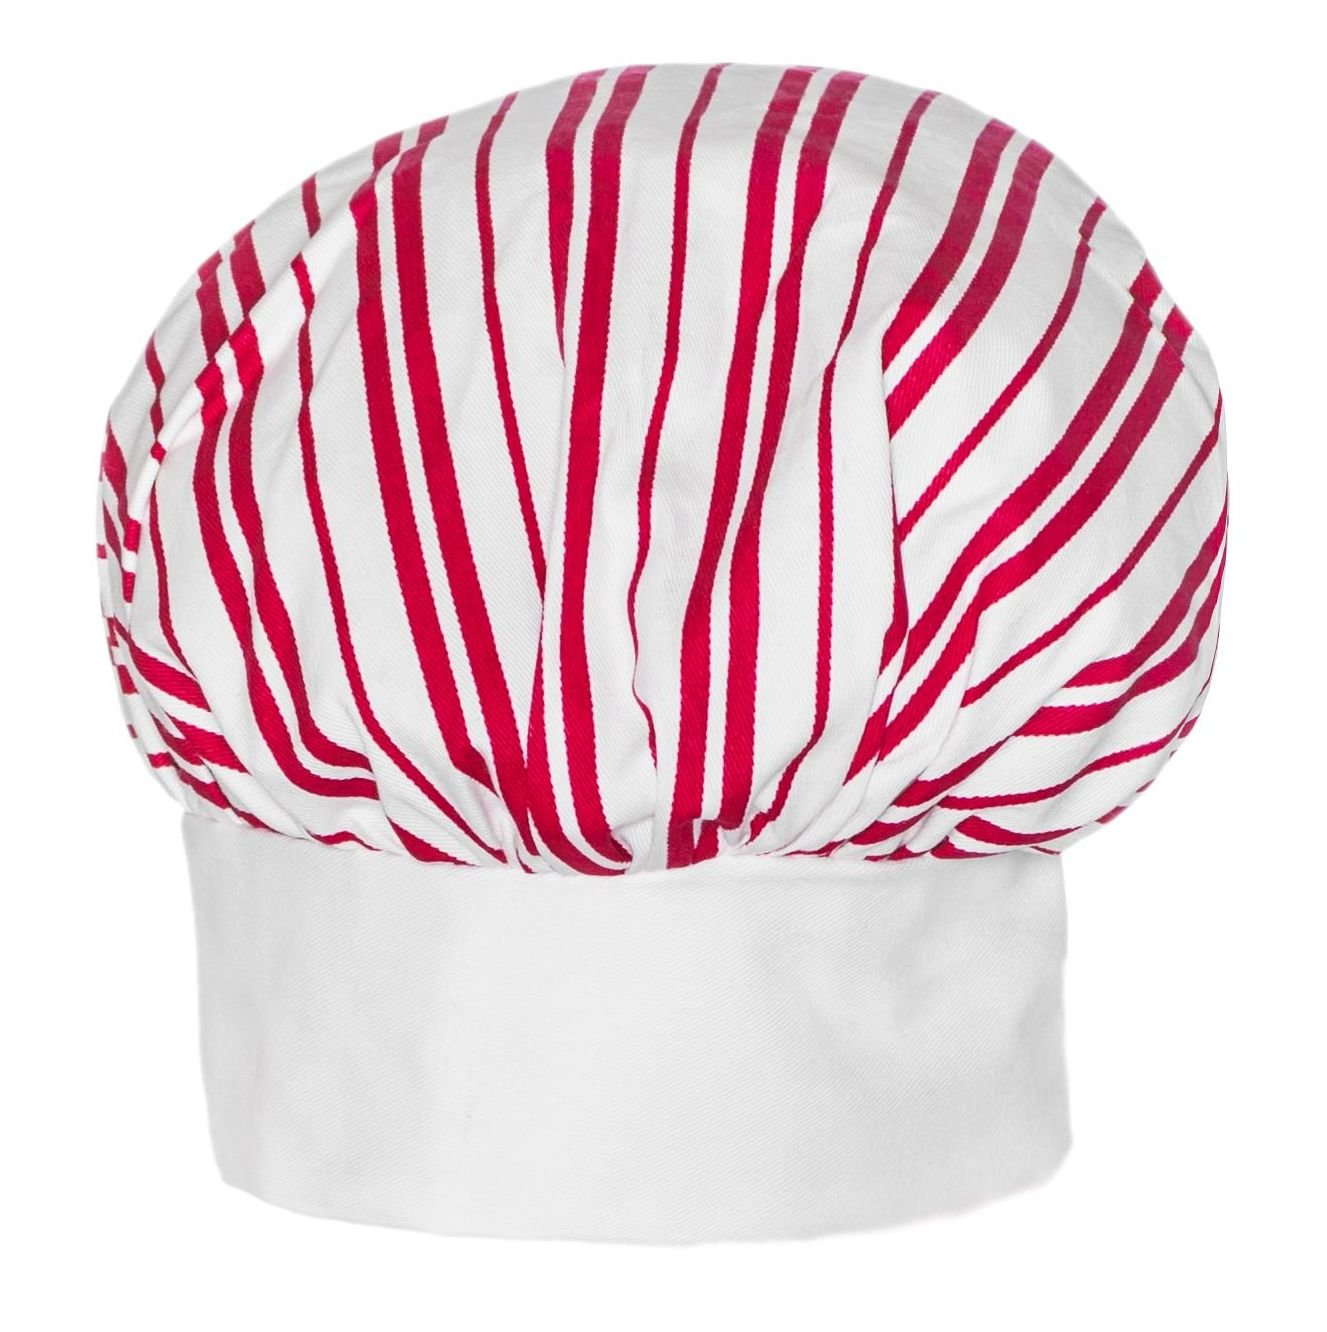 Handstand Kitchen Child's Classic Red Stripe 100% Cotton Apron, Mitt and Chef's Hat Gift Set